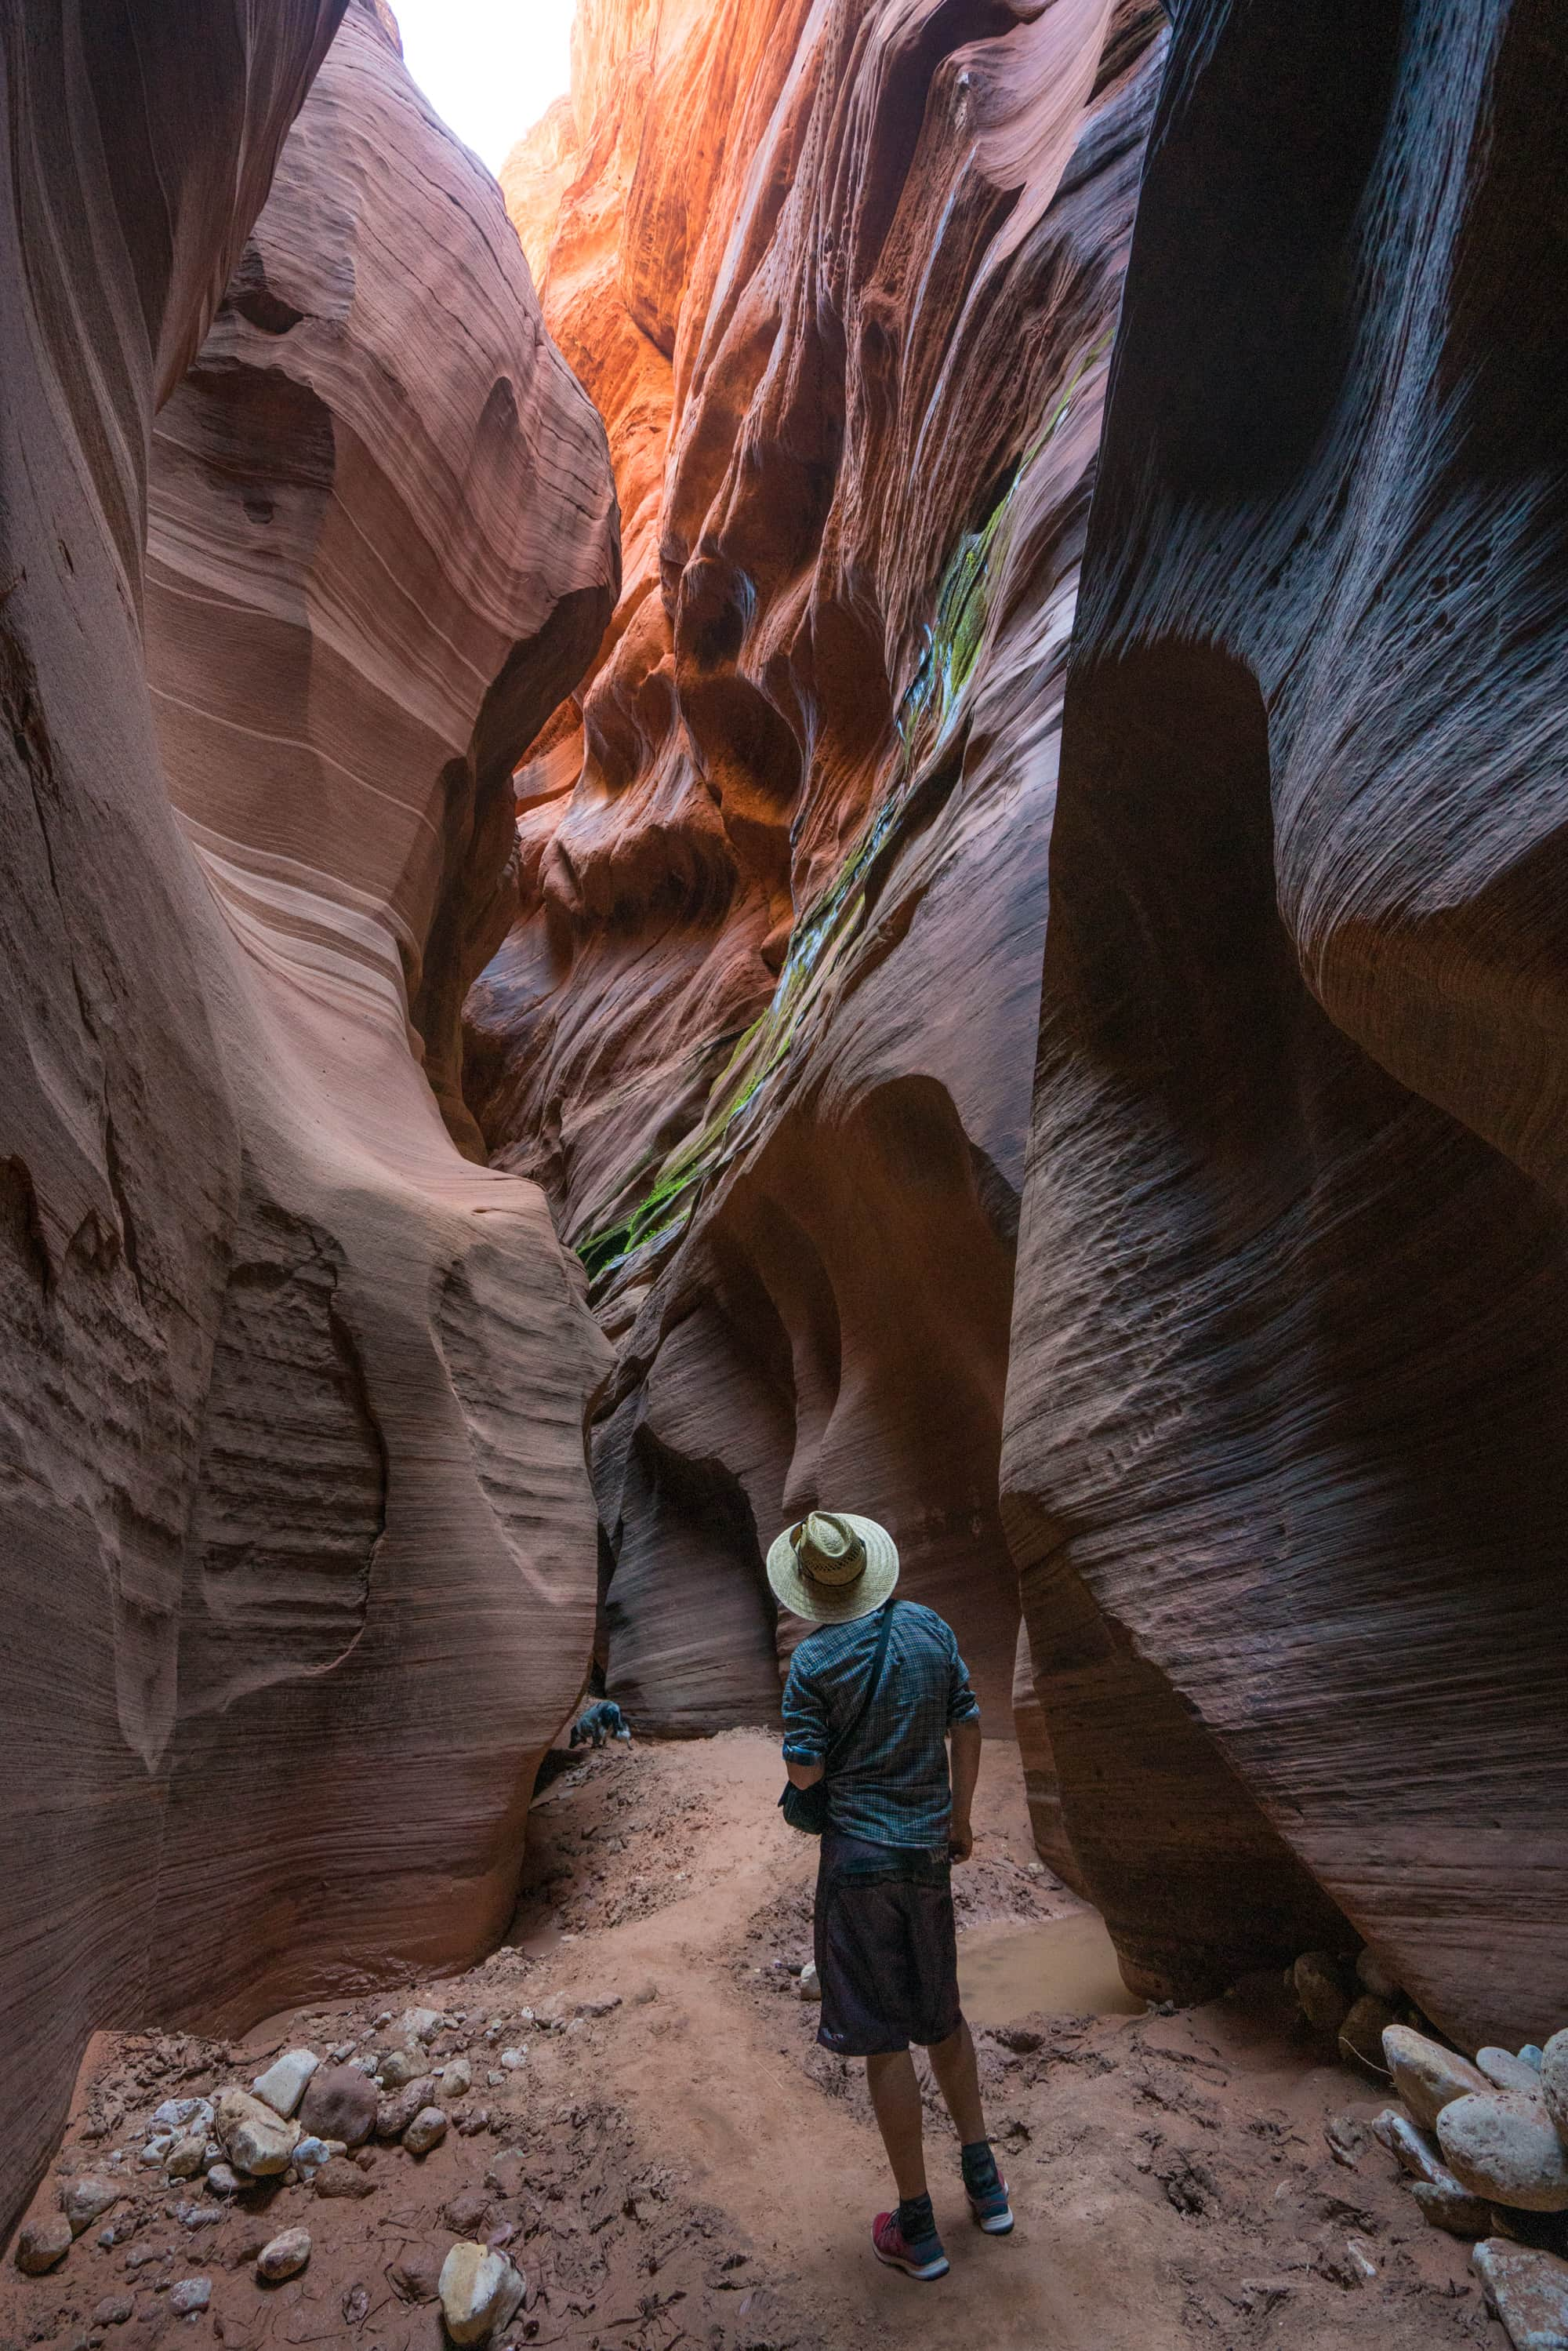 Buckskin Gulch is the longest slot canyon in the US, if not the world // A round-up of the best hikes in Utah. Explore Utah's epic landscapes and get tips for tackling these bucketlist trails.